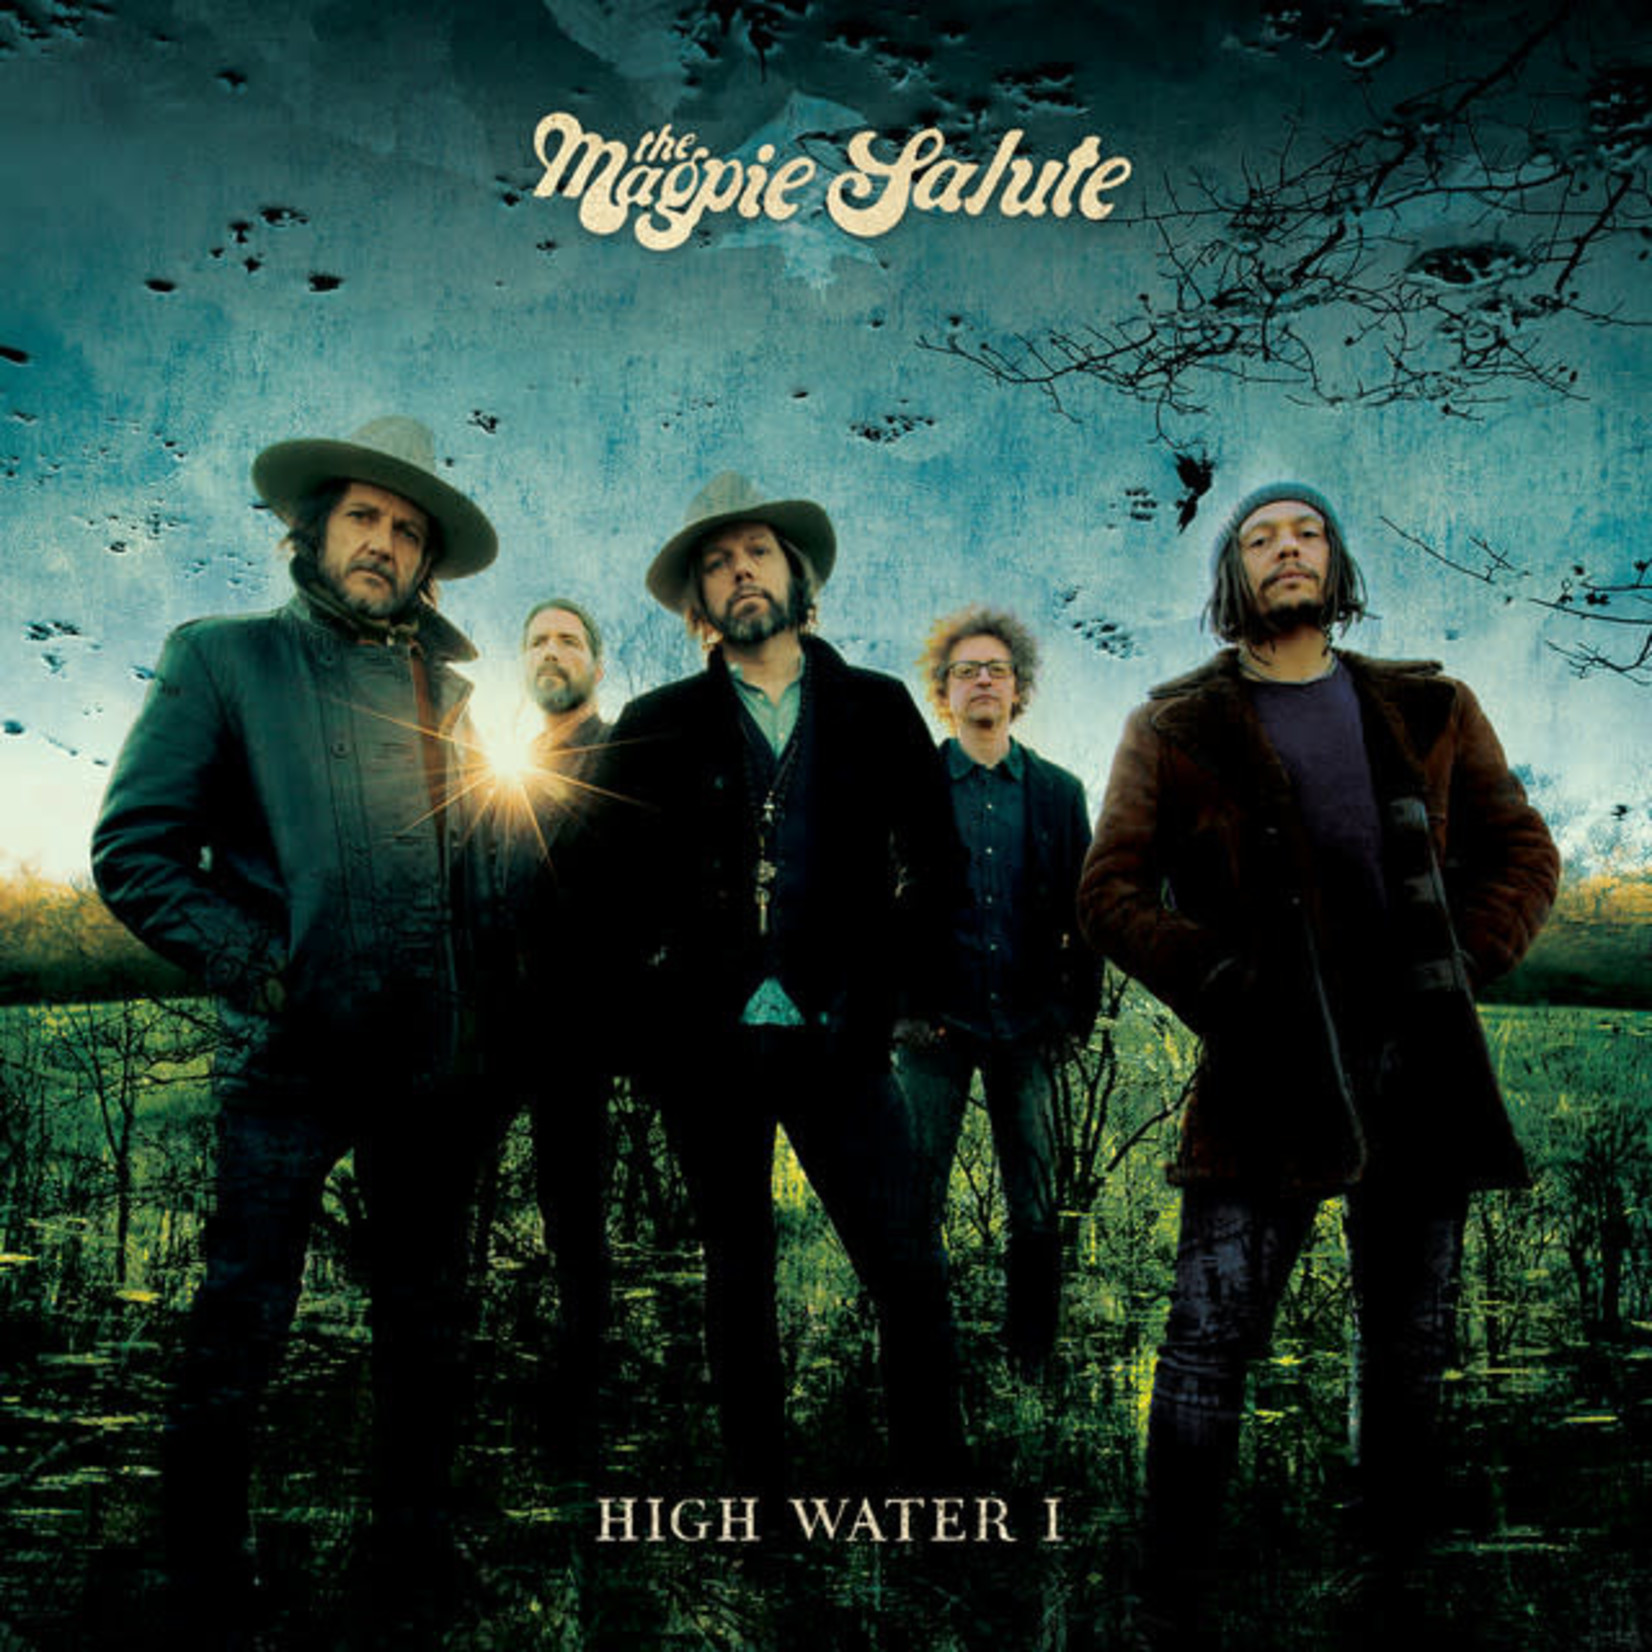 Vinyl The Magpie Salute - High Water I. $$